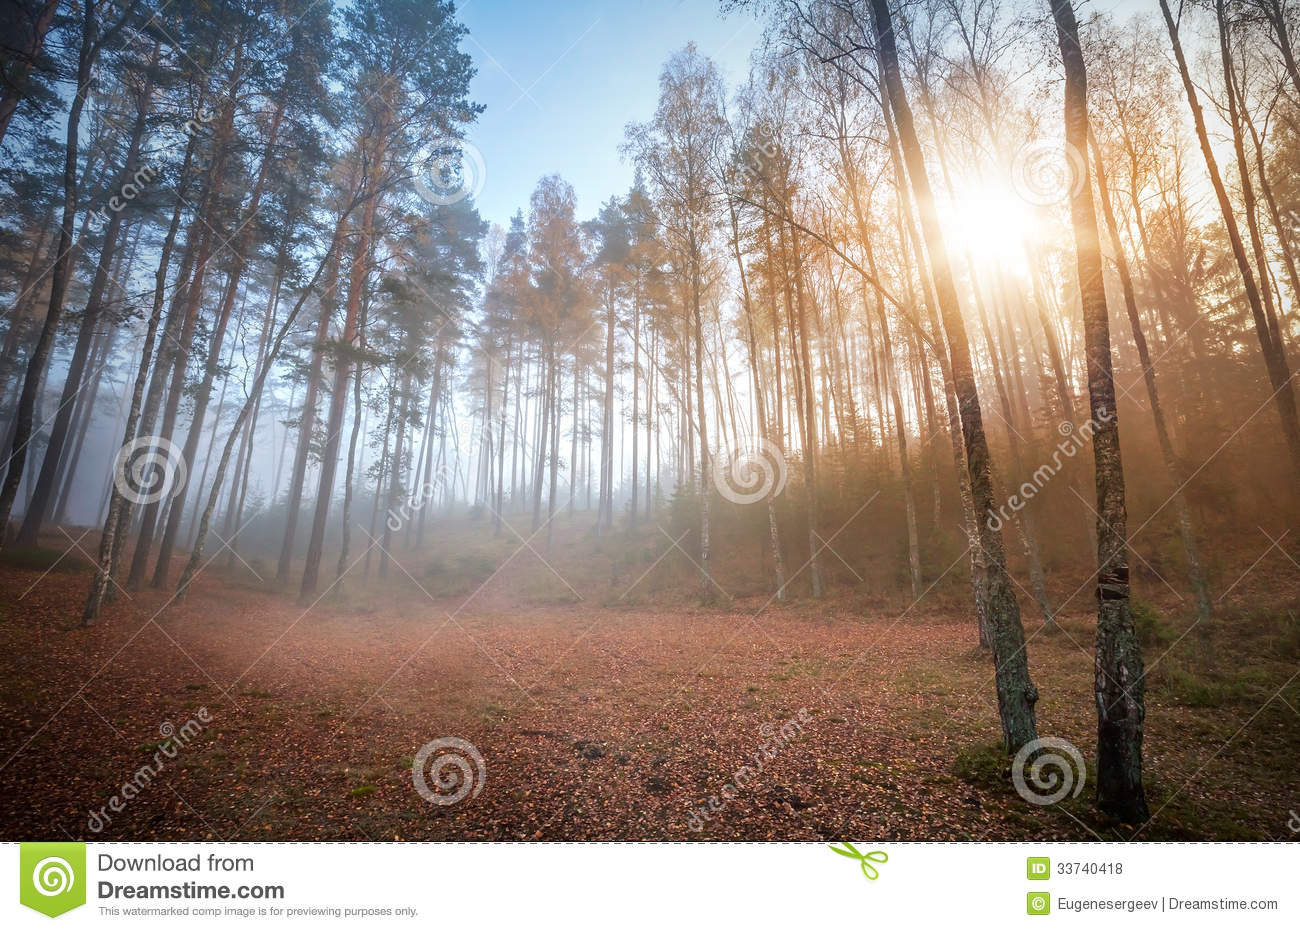 Royalty free stock photos: autumn foggy ащкуые with rising sun